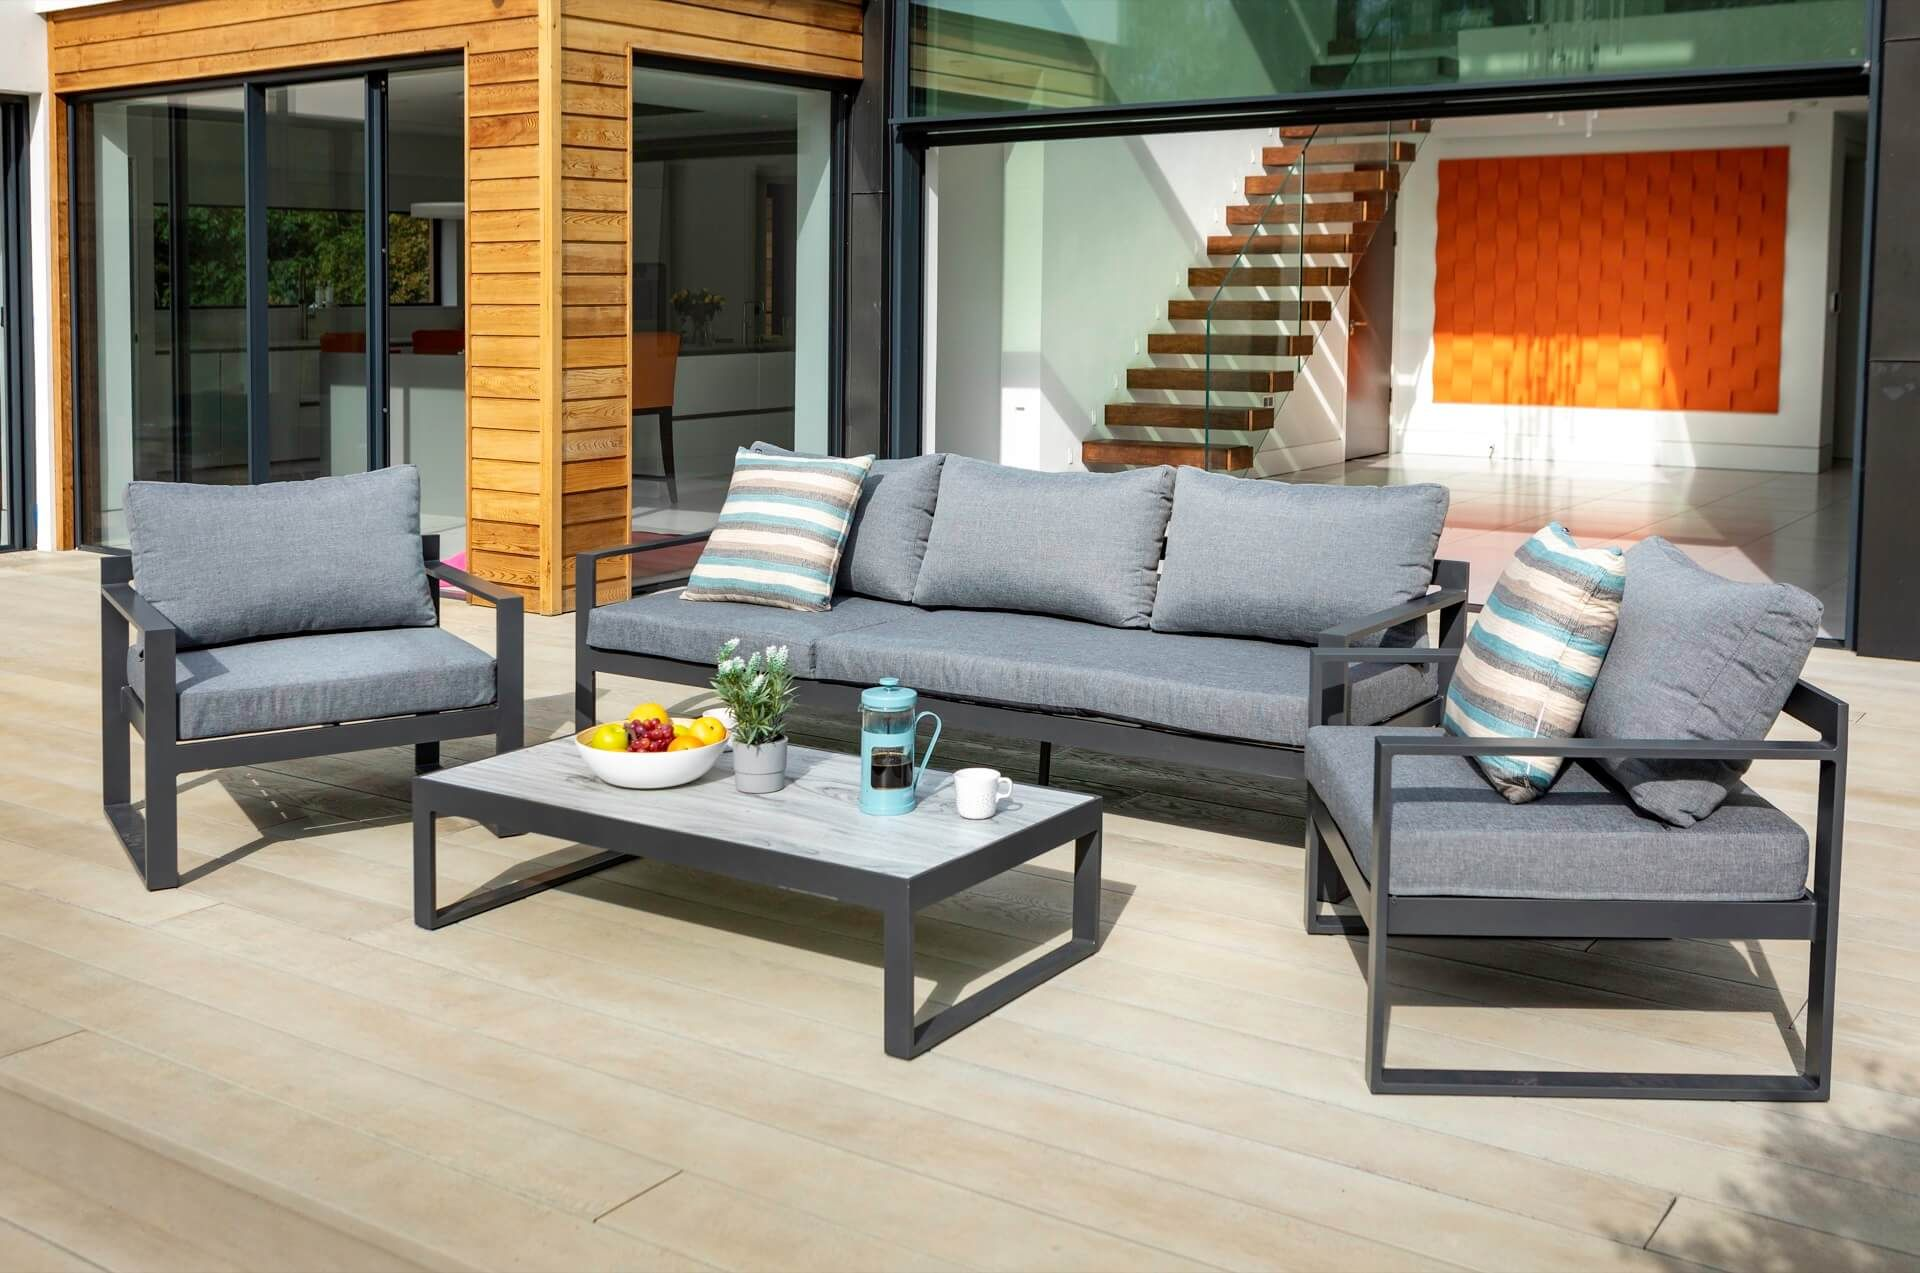 Vienna 3 Seat Lounge Set With Integrated Lounger Vienna Aluminium Garden Furnitu Aluminium Garden Furniture Outdoor Furniture Sofa Modern Outdoor Furniture